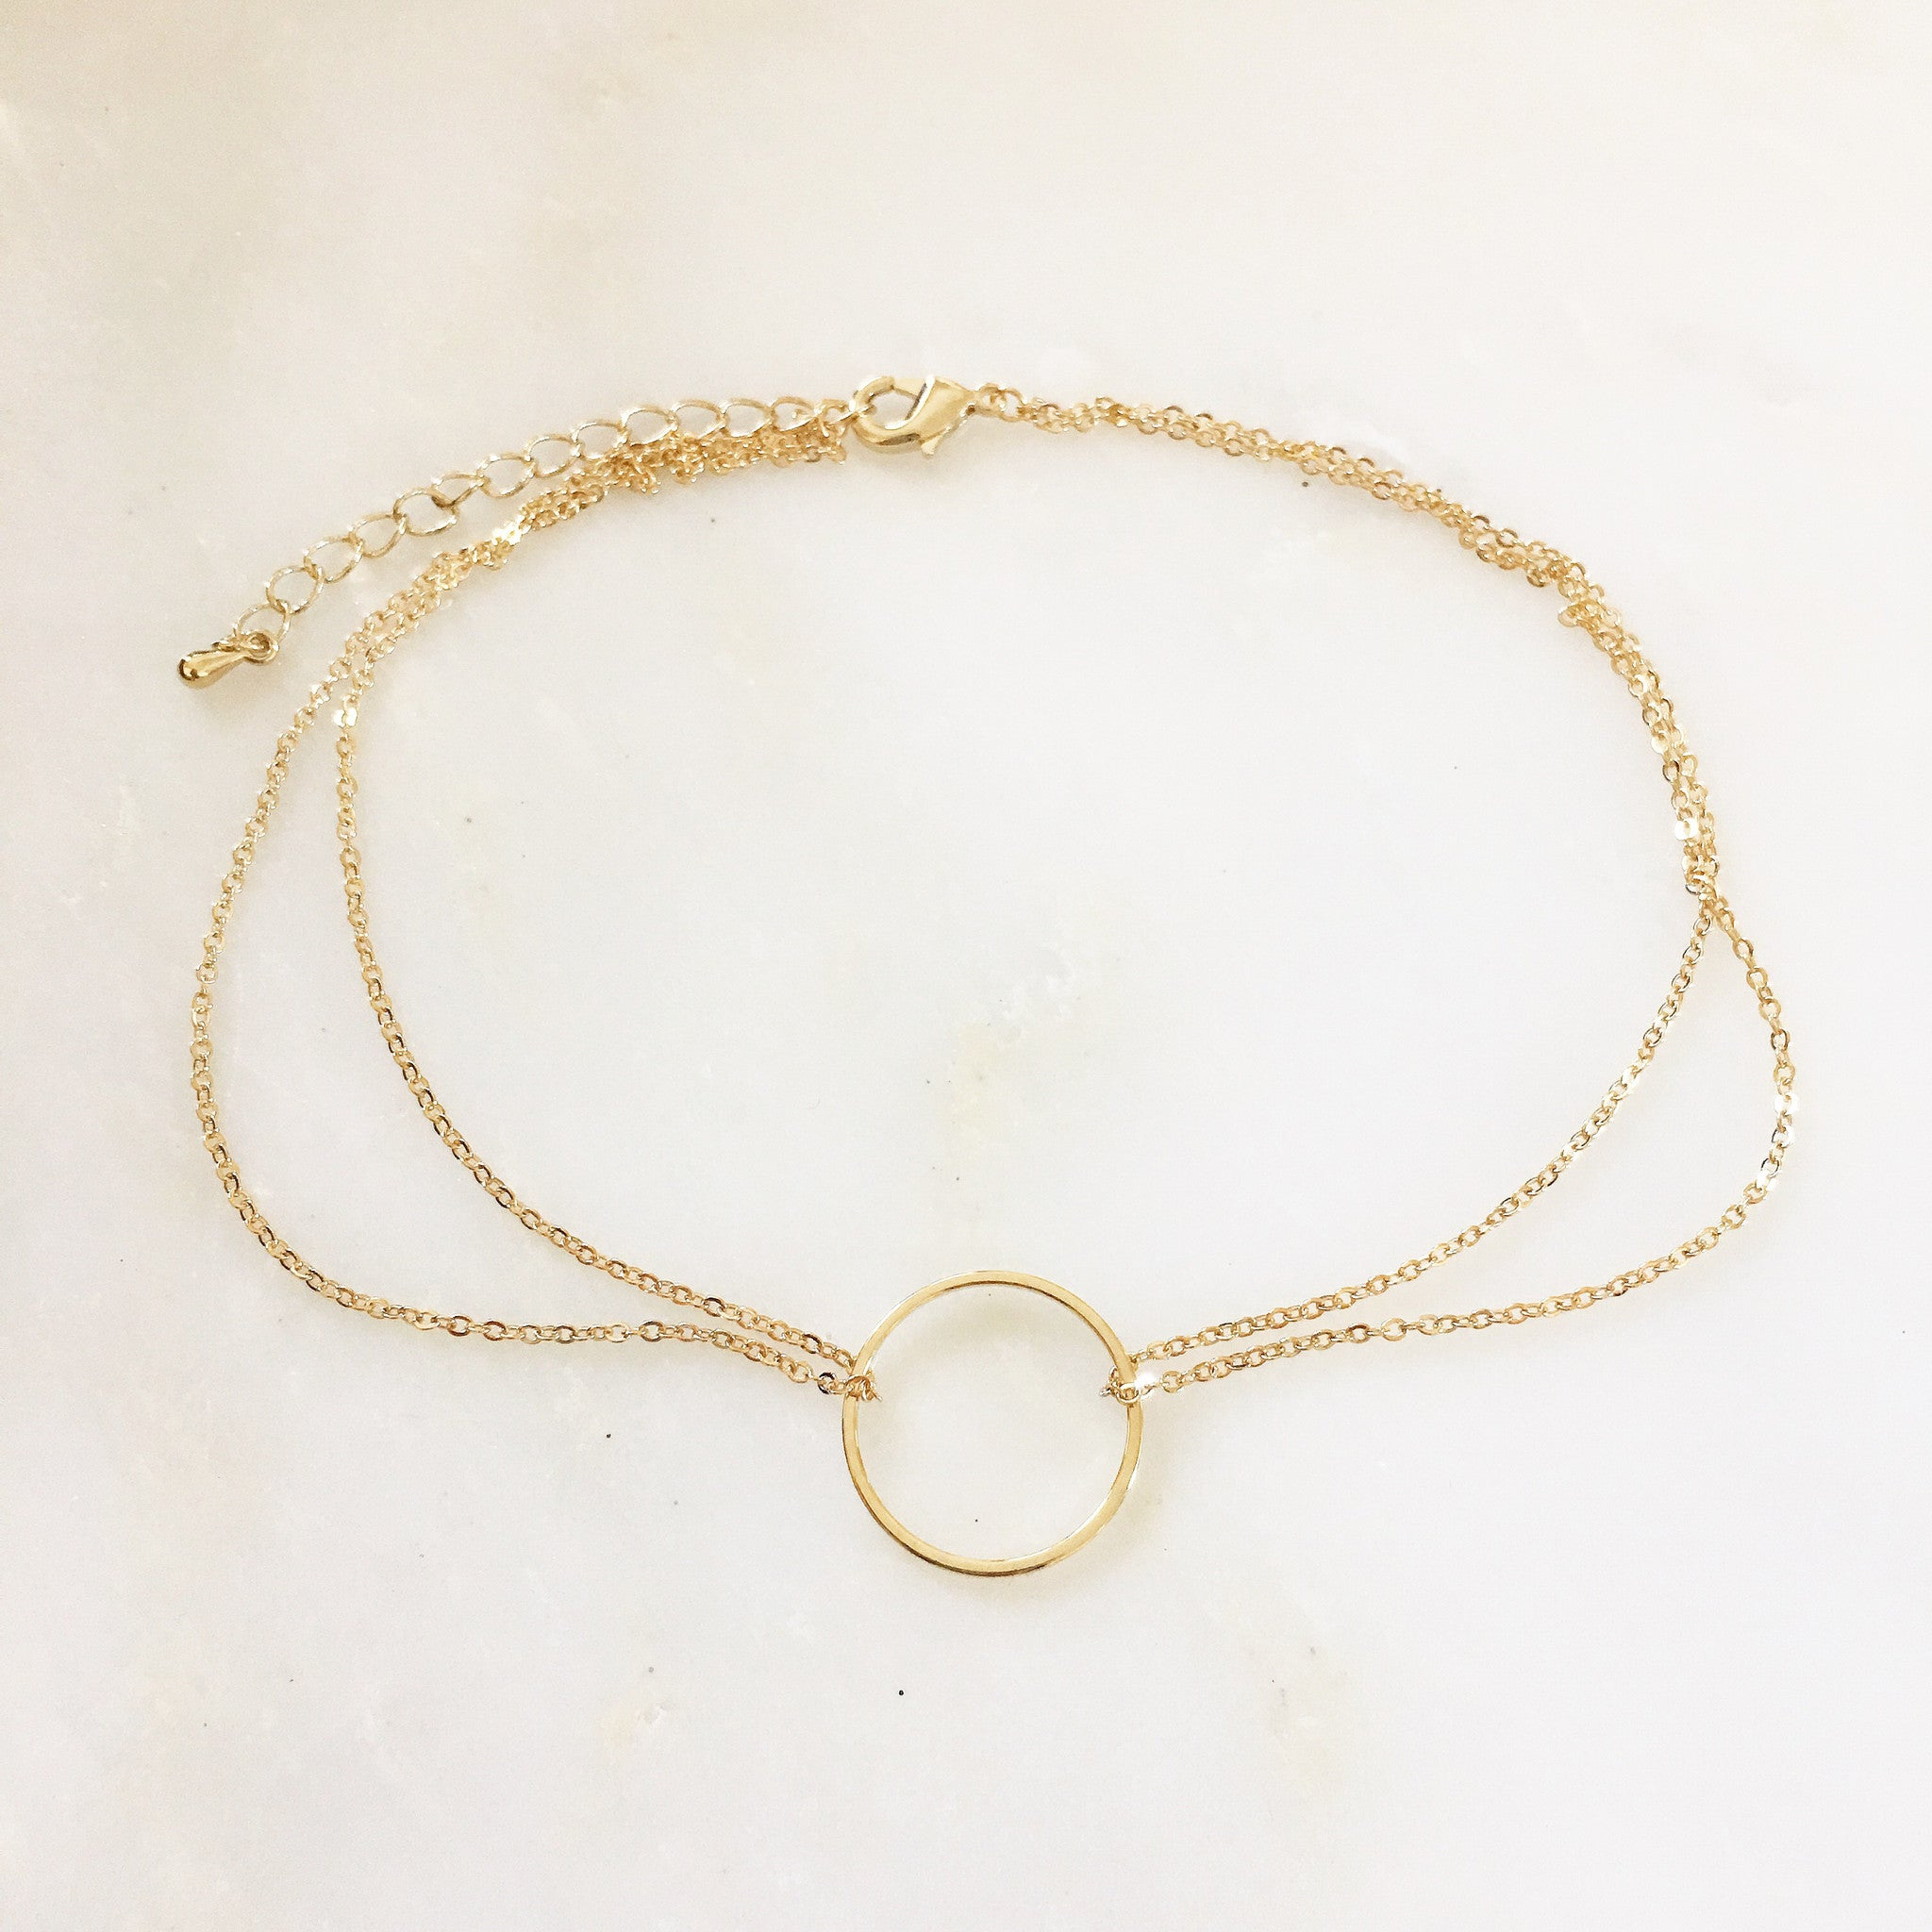 O CHAIN CHOKER - Necklace